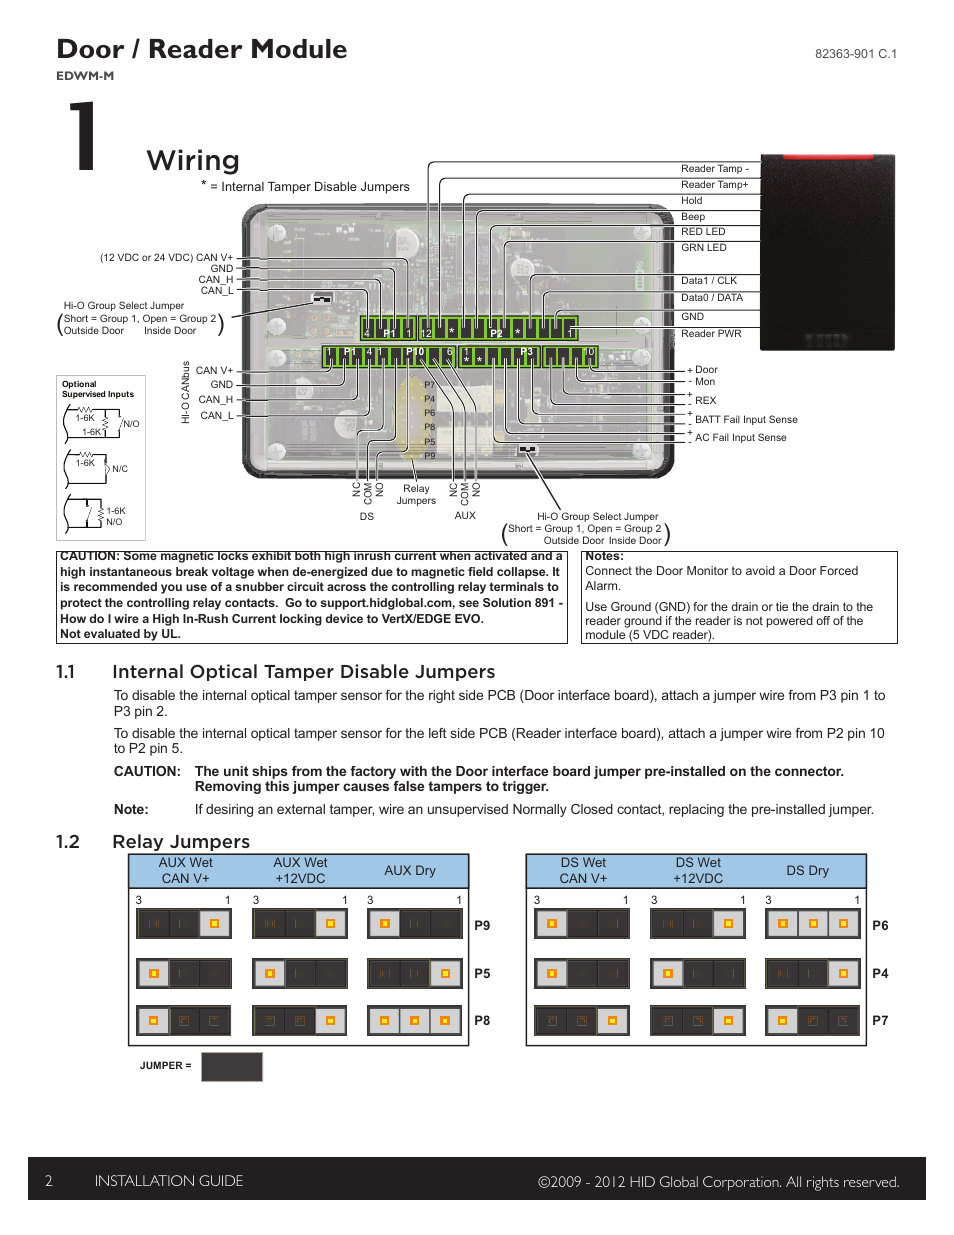 hid edge evo ewm m wiegand module installation guide page2 1 wiring, 1 internal optical tamper disable jumpers, 2 relay hid edge evo wiring diagram at bayanpartner.co